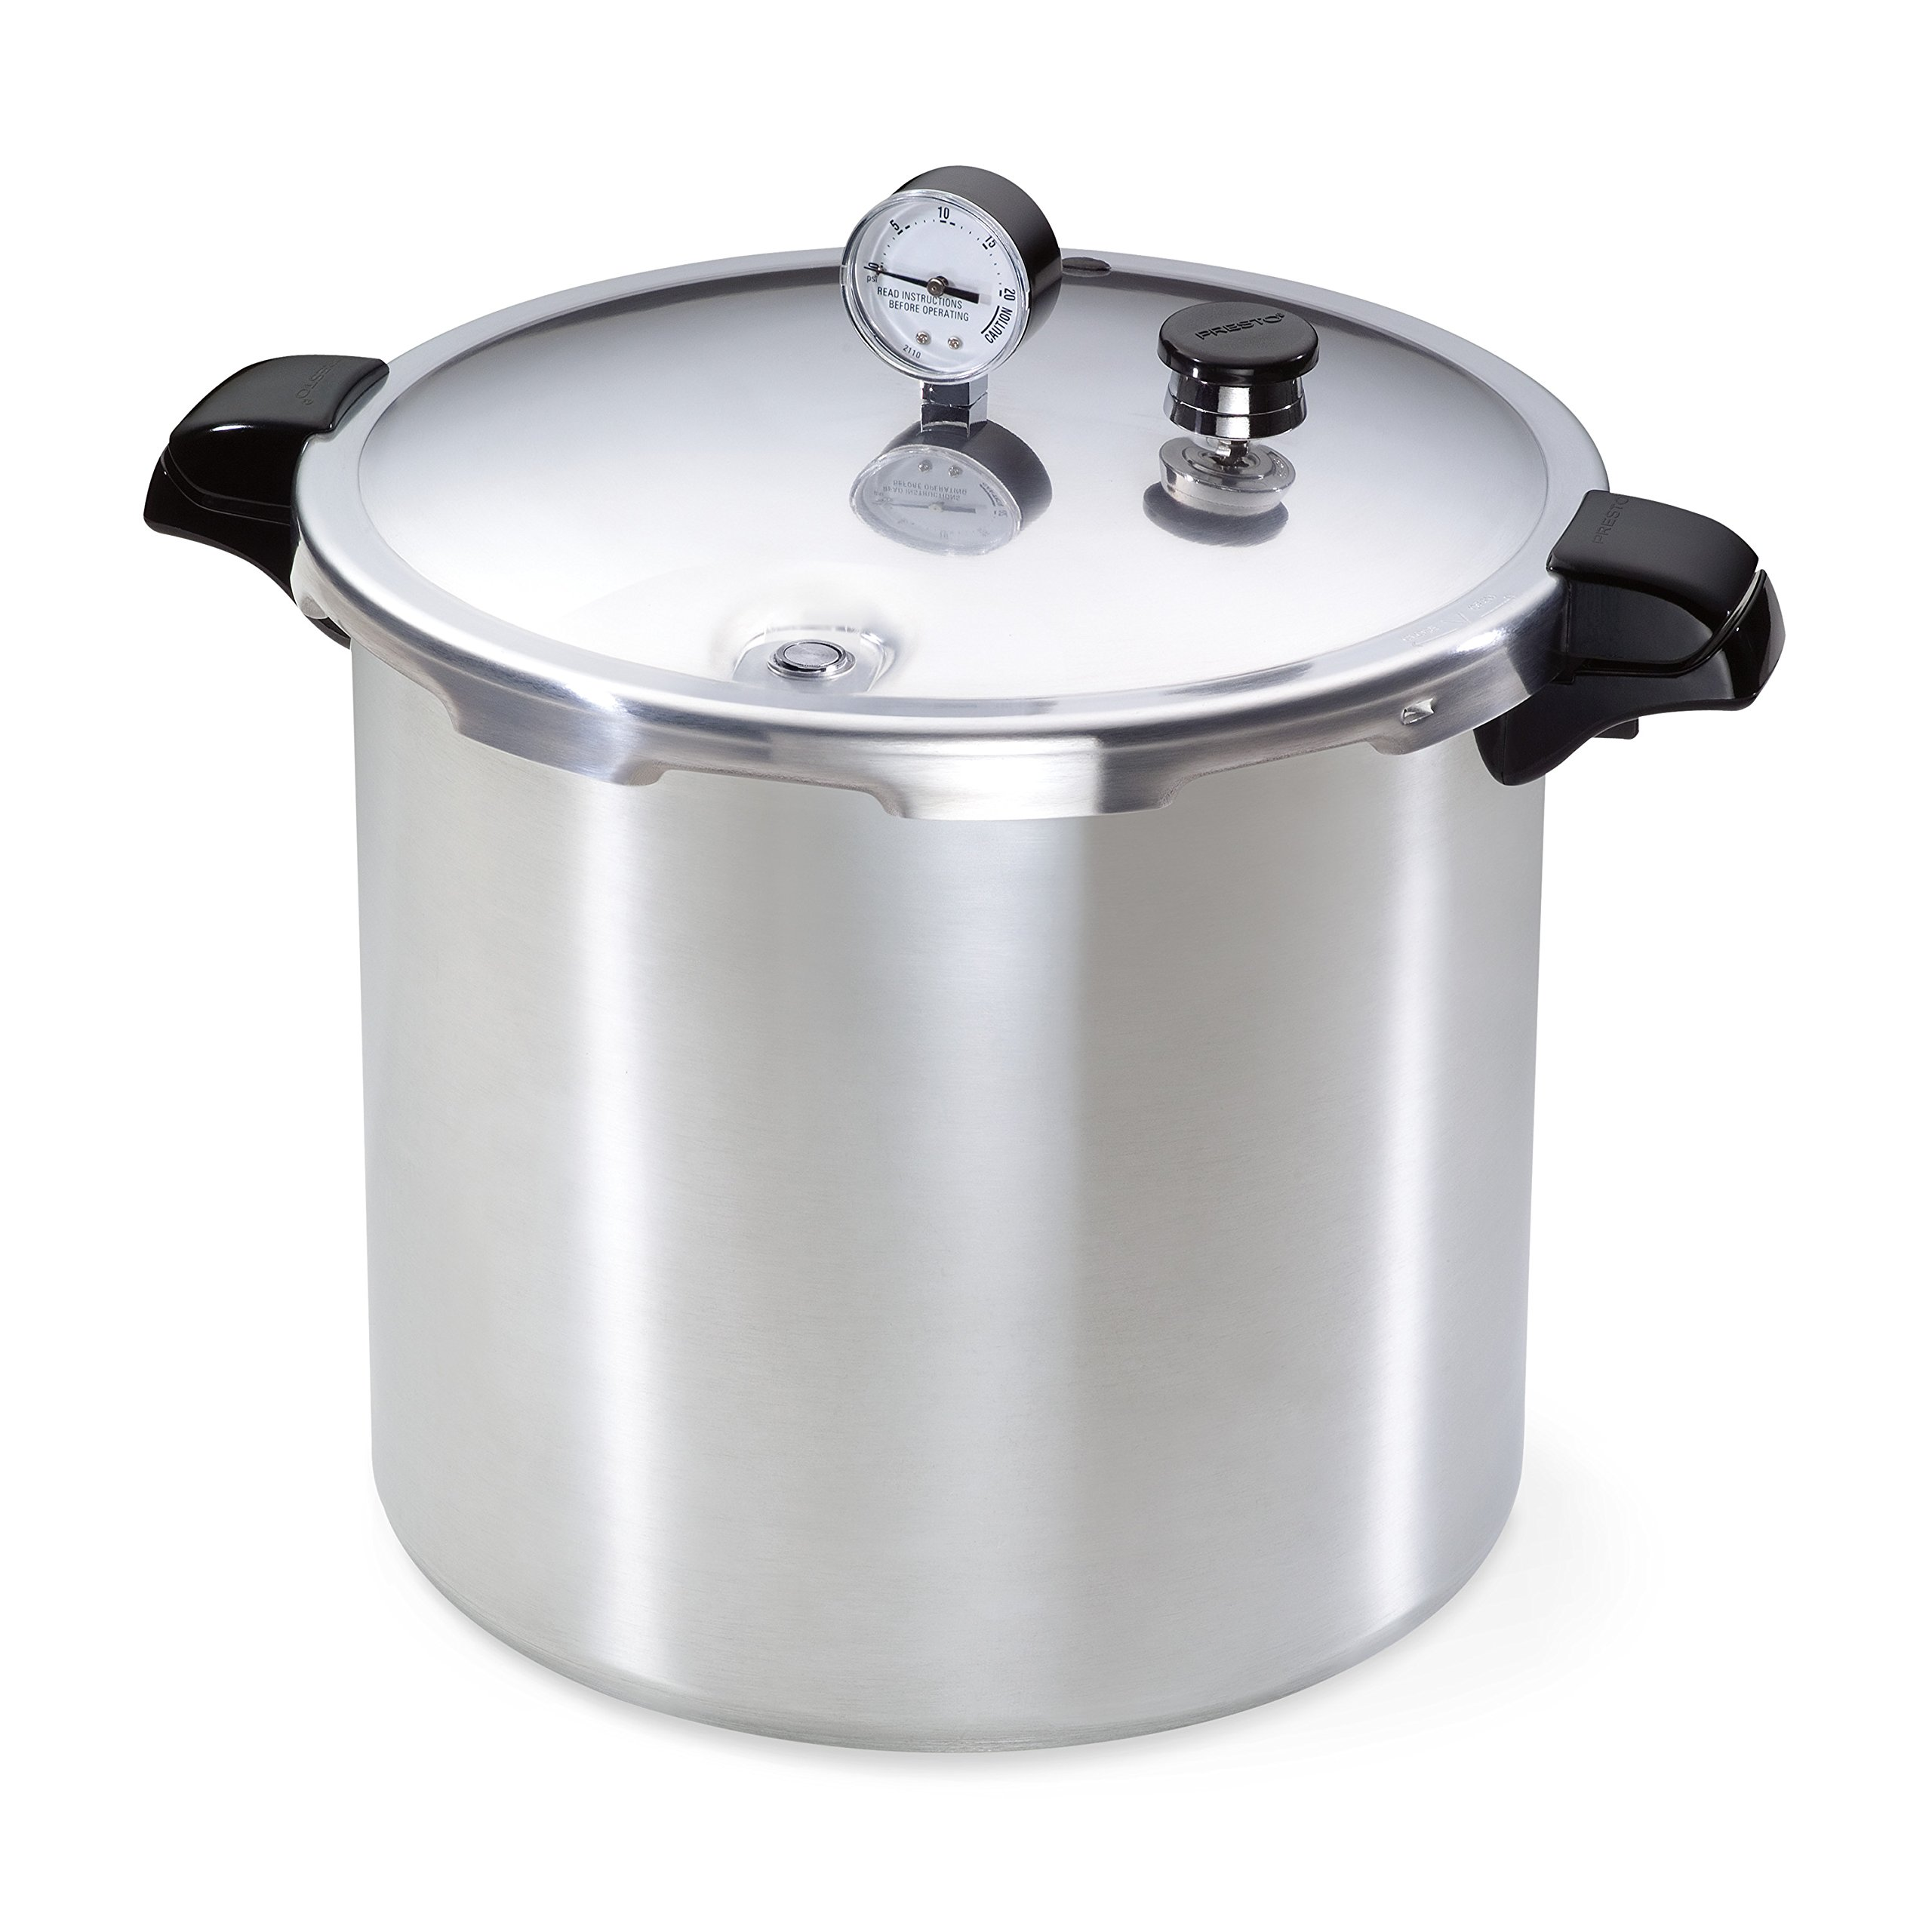 Presto 01781 23-Quart Pressure Canner and Cooker by Presto